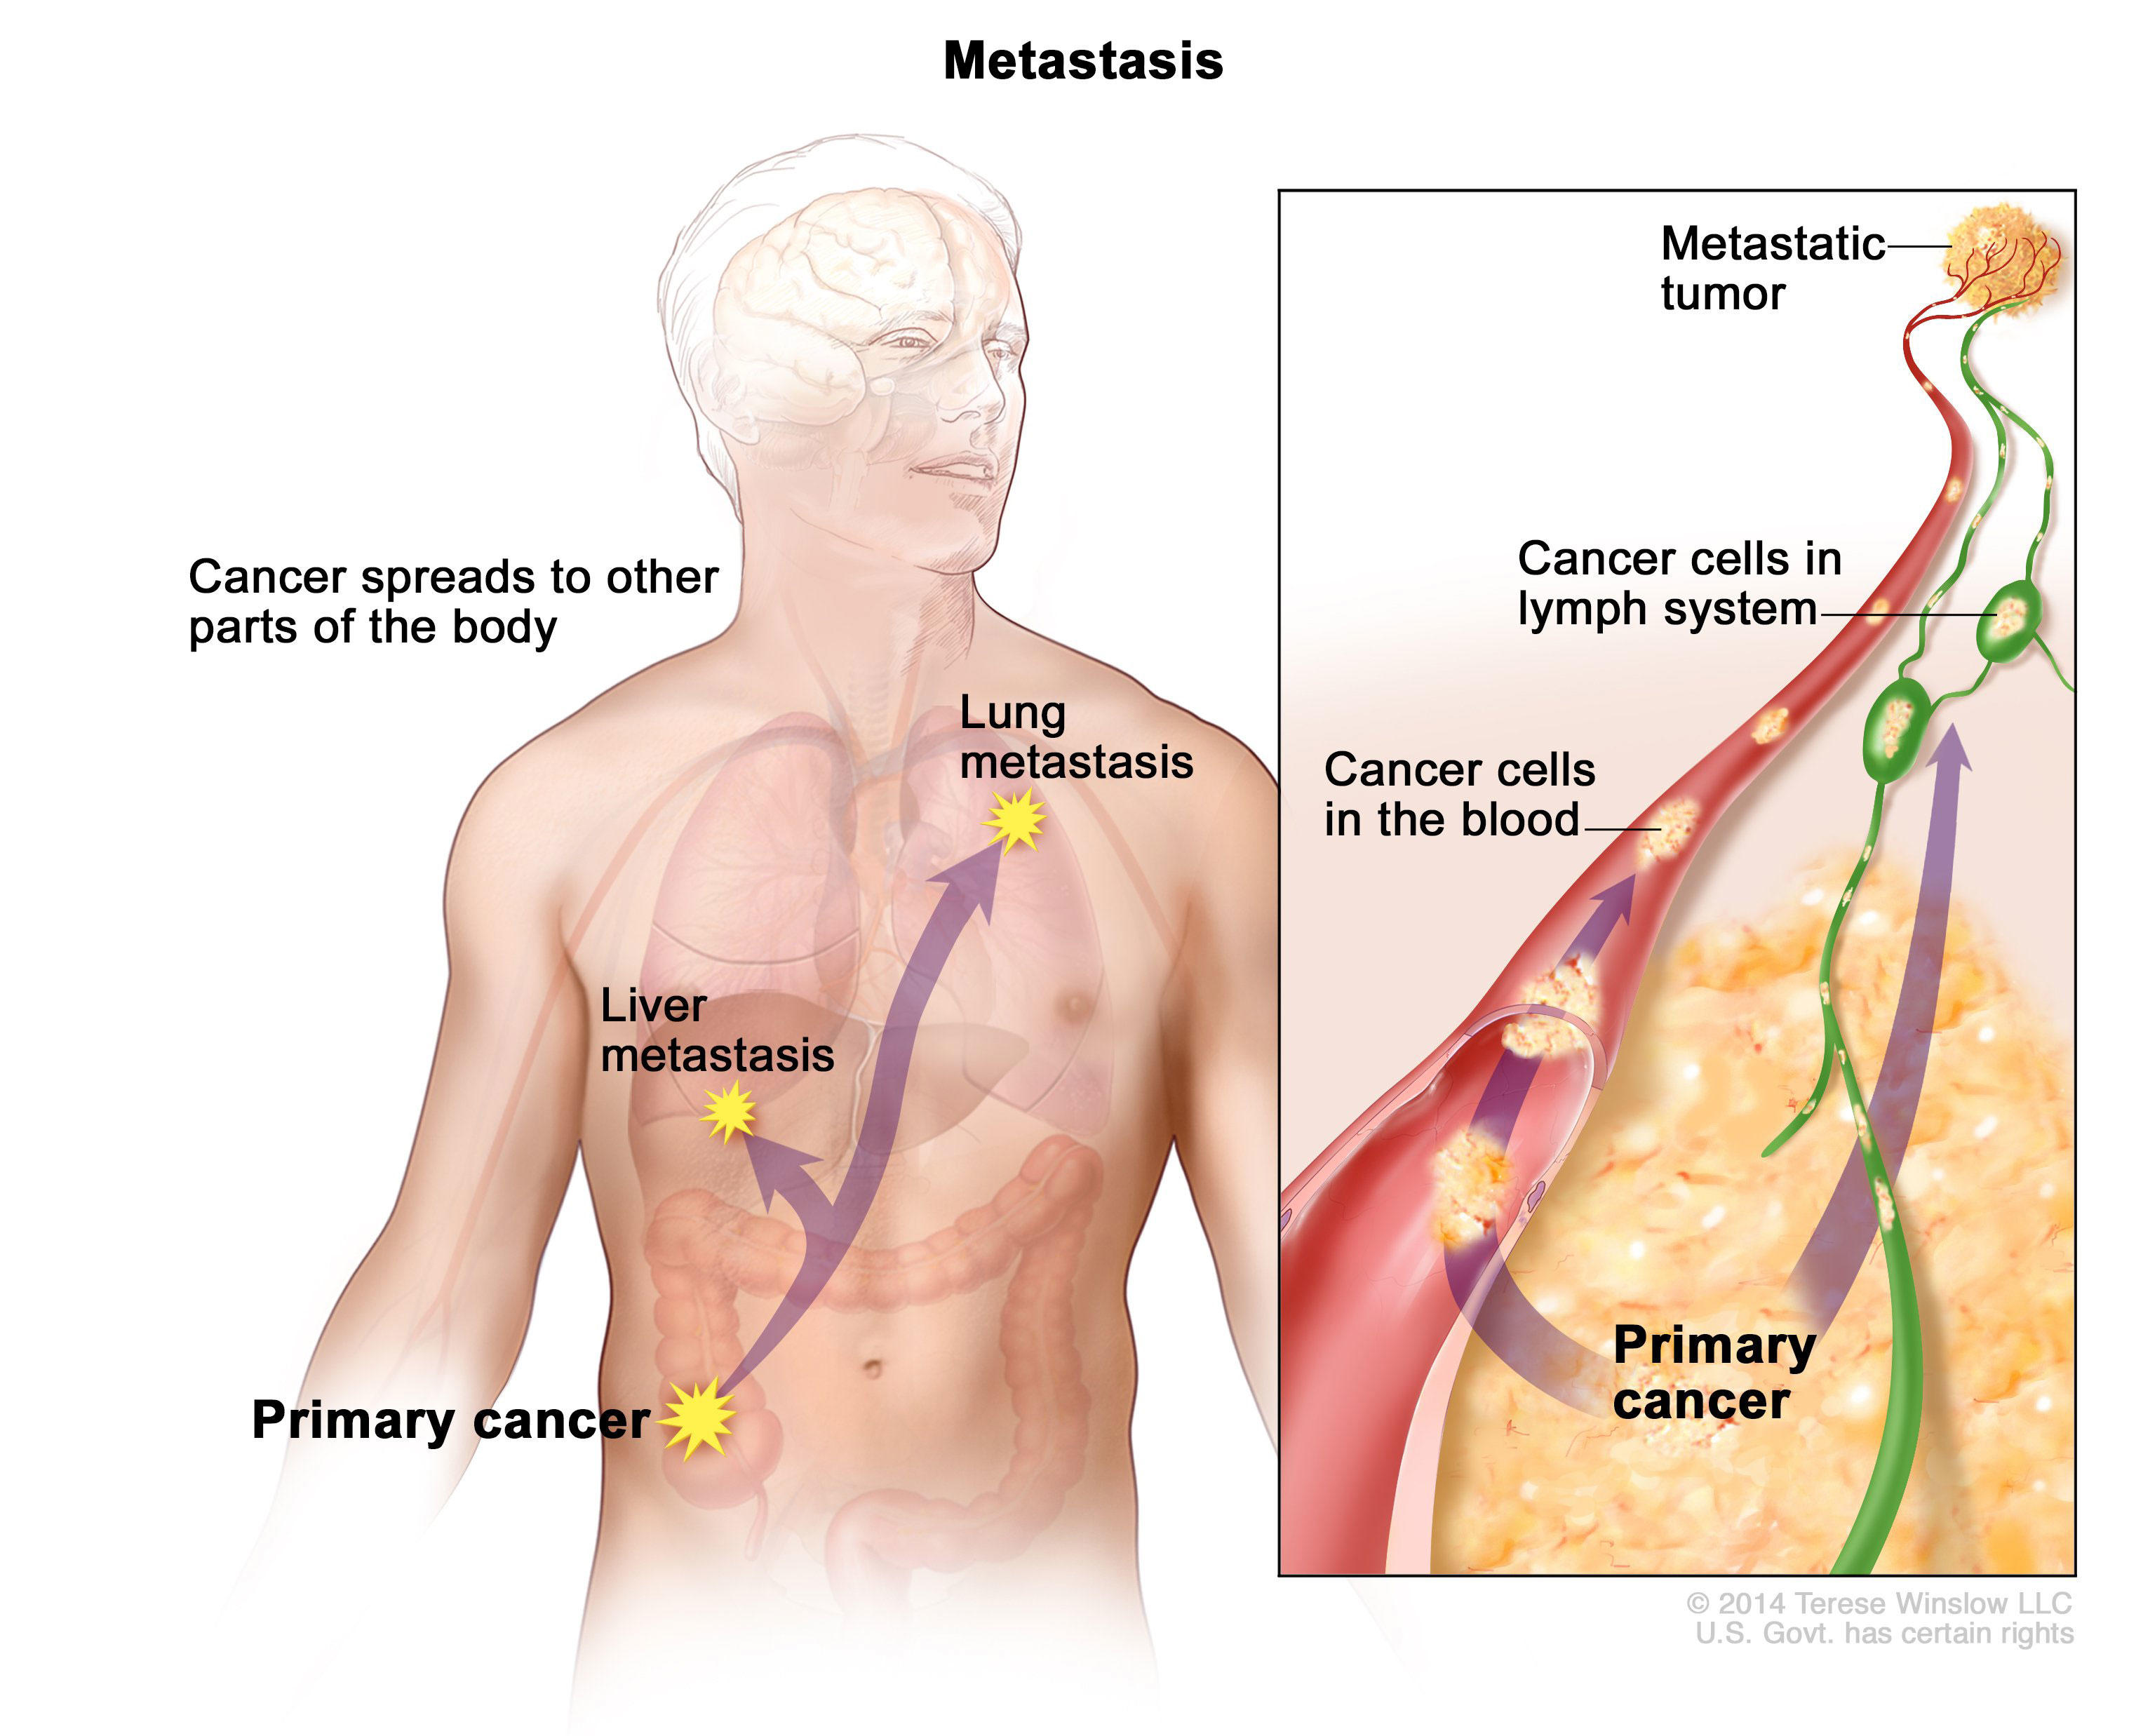 metastatic cancer and carcinoma